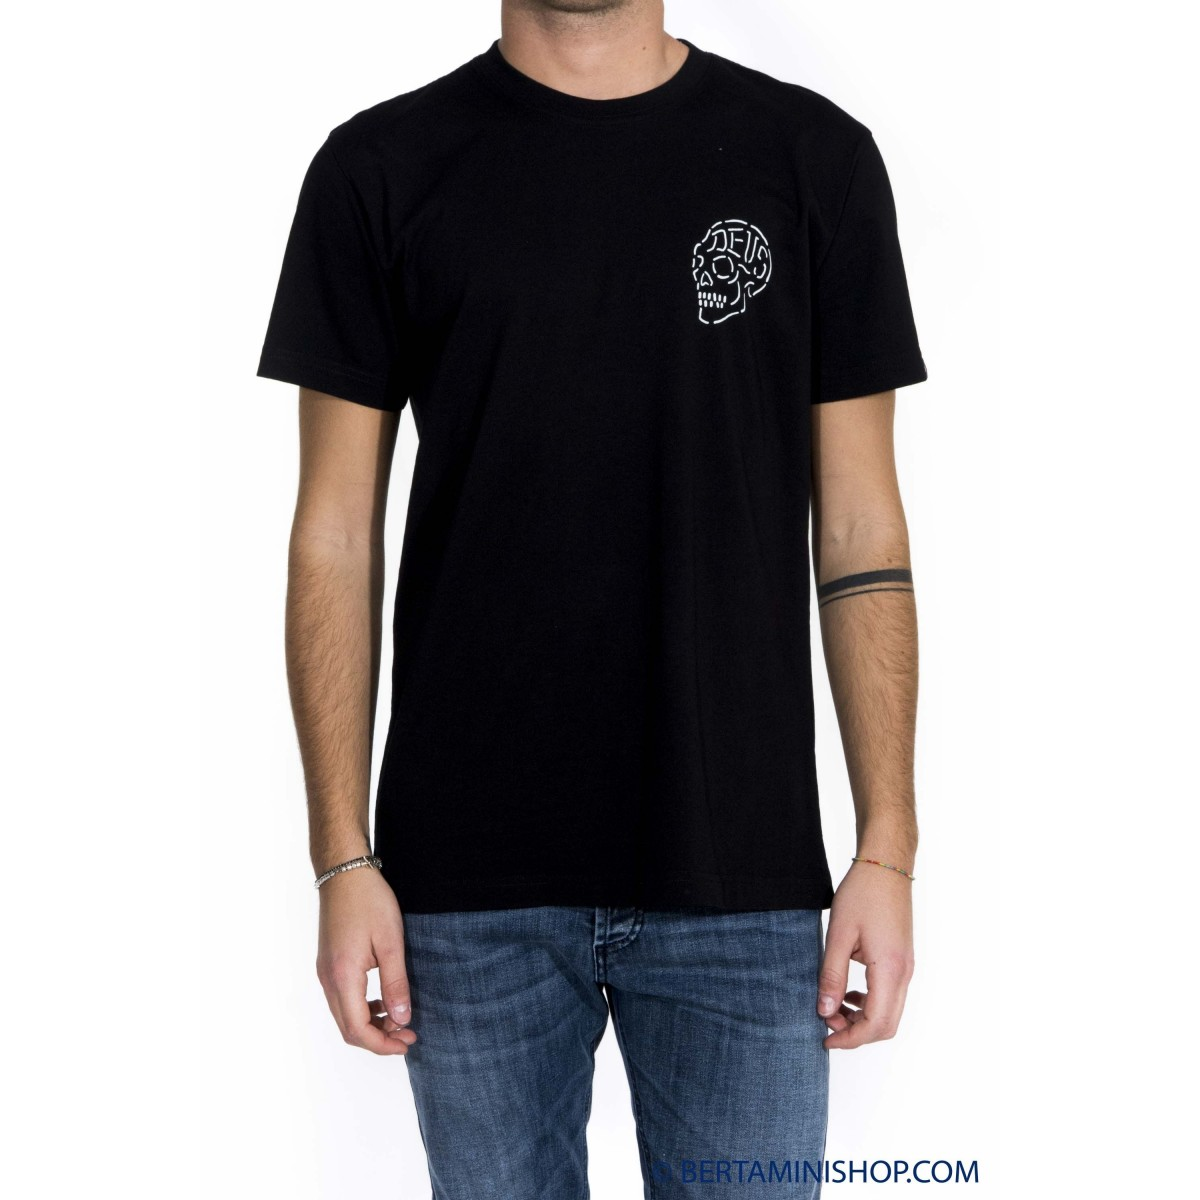 T-shirt uomo Deus ex machina - Dmh31645c icons